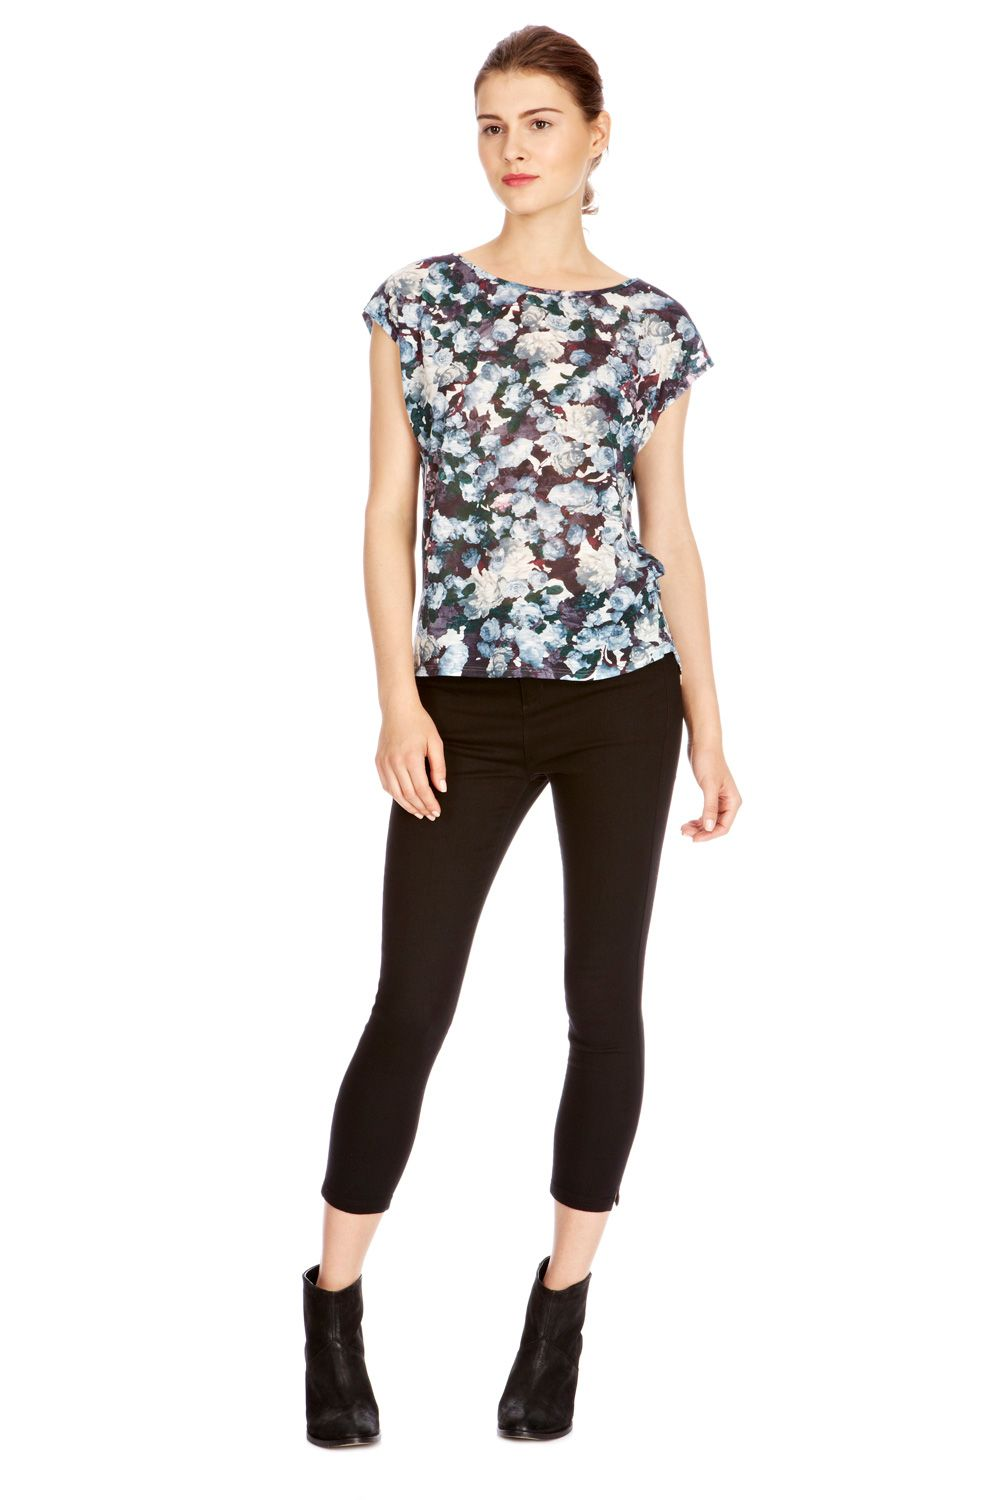 Smudge floral slub top